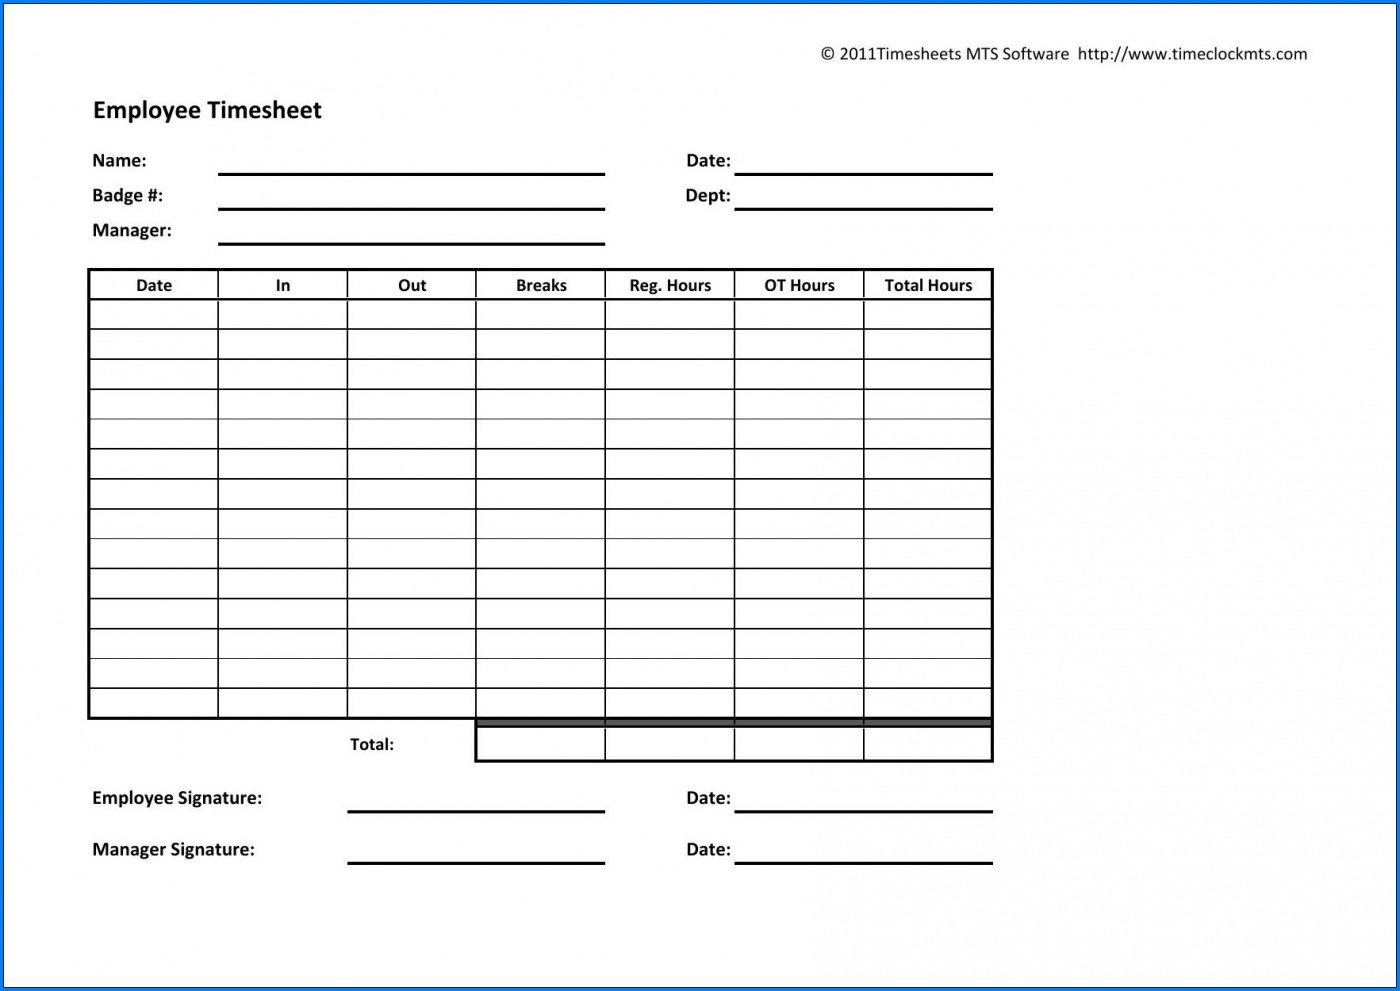 003 Archaicawful Employee Time Card Printable Idea  Timesheet Template Excel Free Multiple Sheet1400